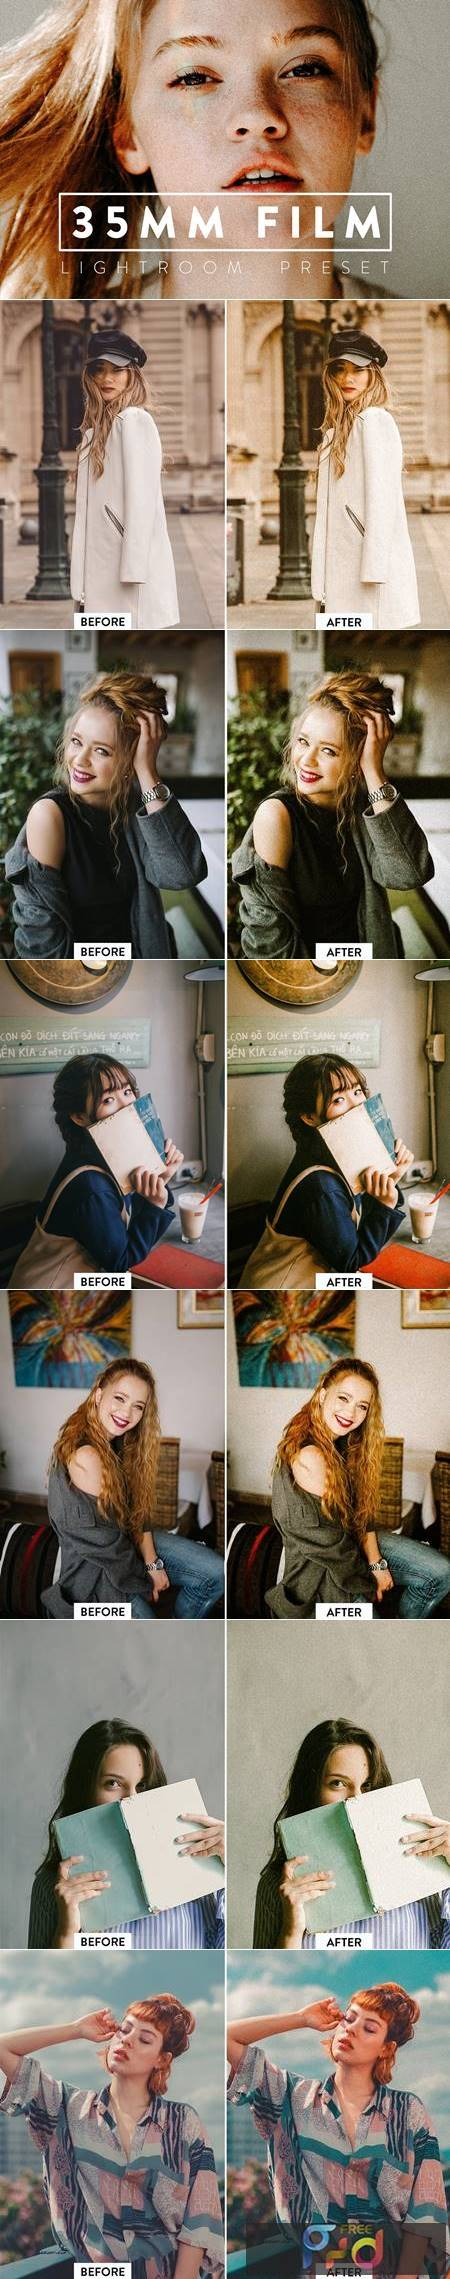 35MM FILM Premium Lightroom Preset 5059779 1